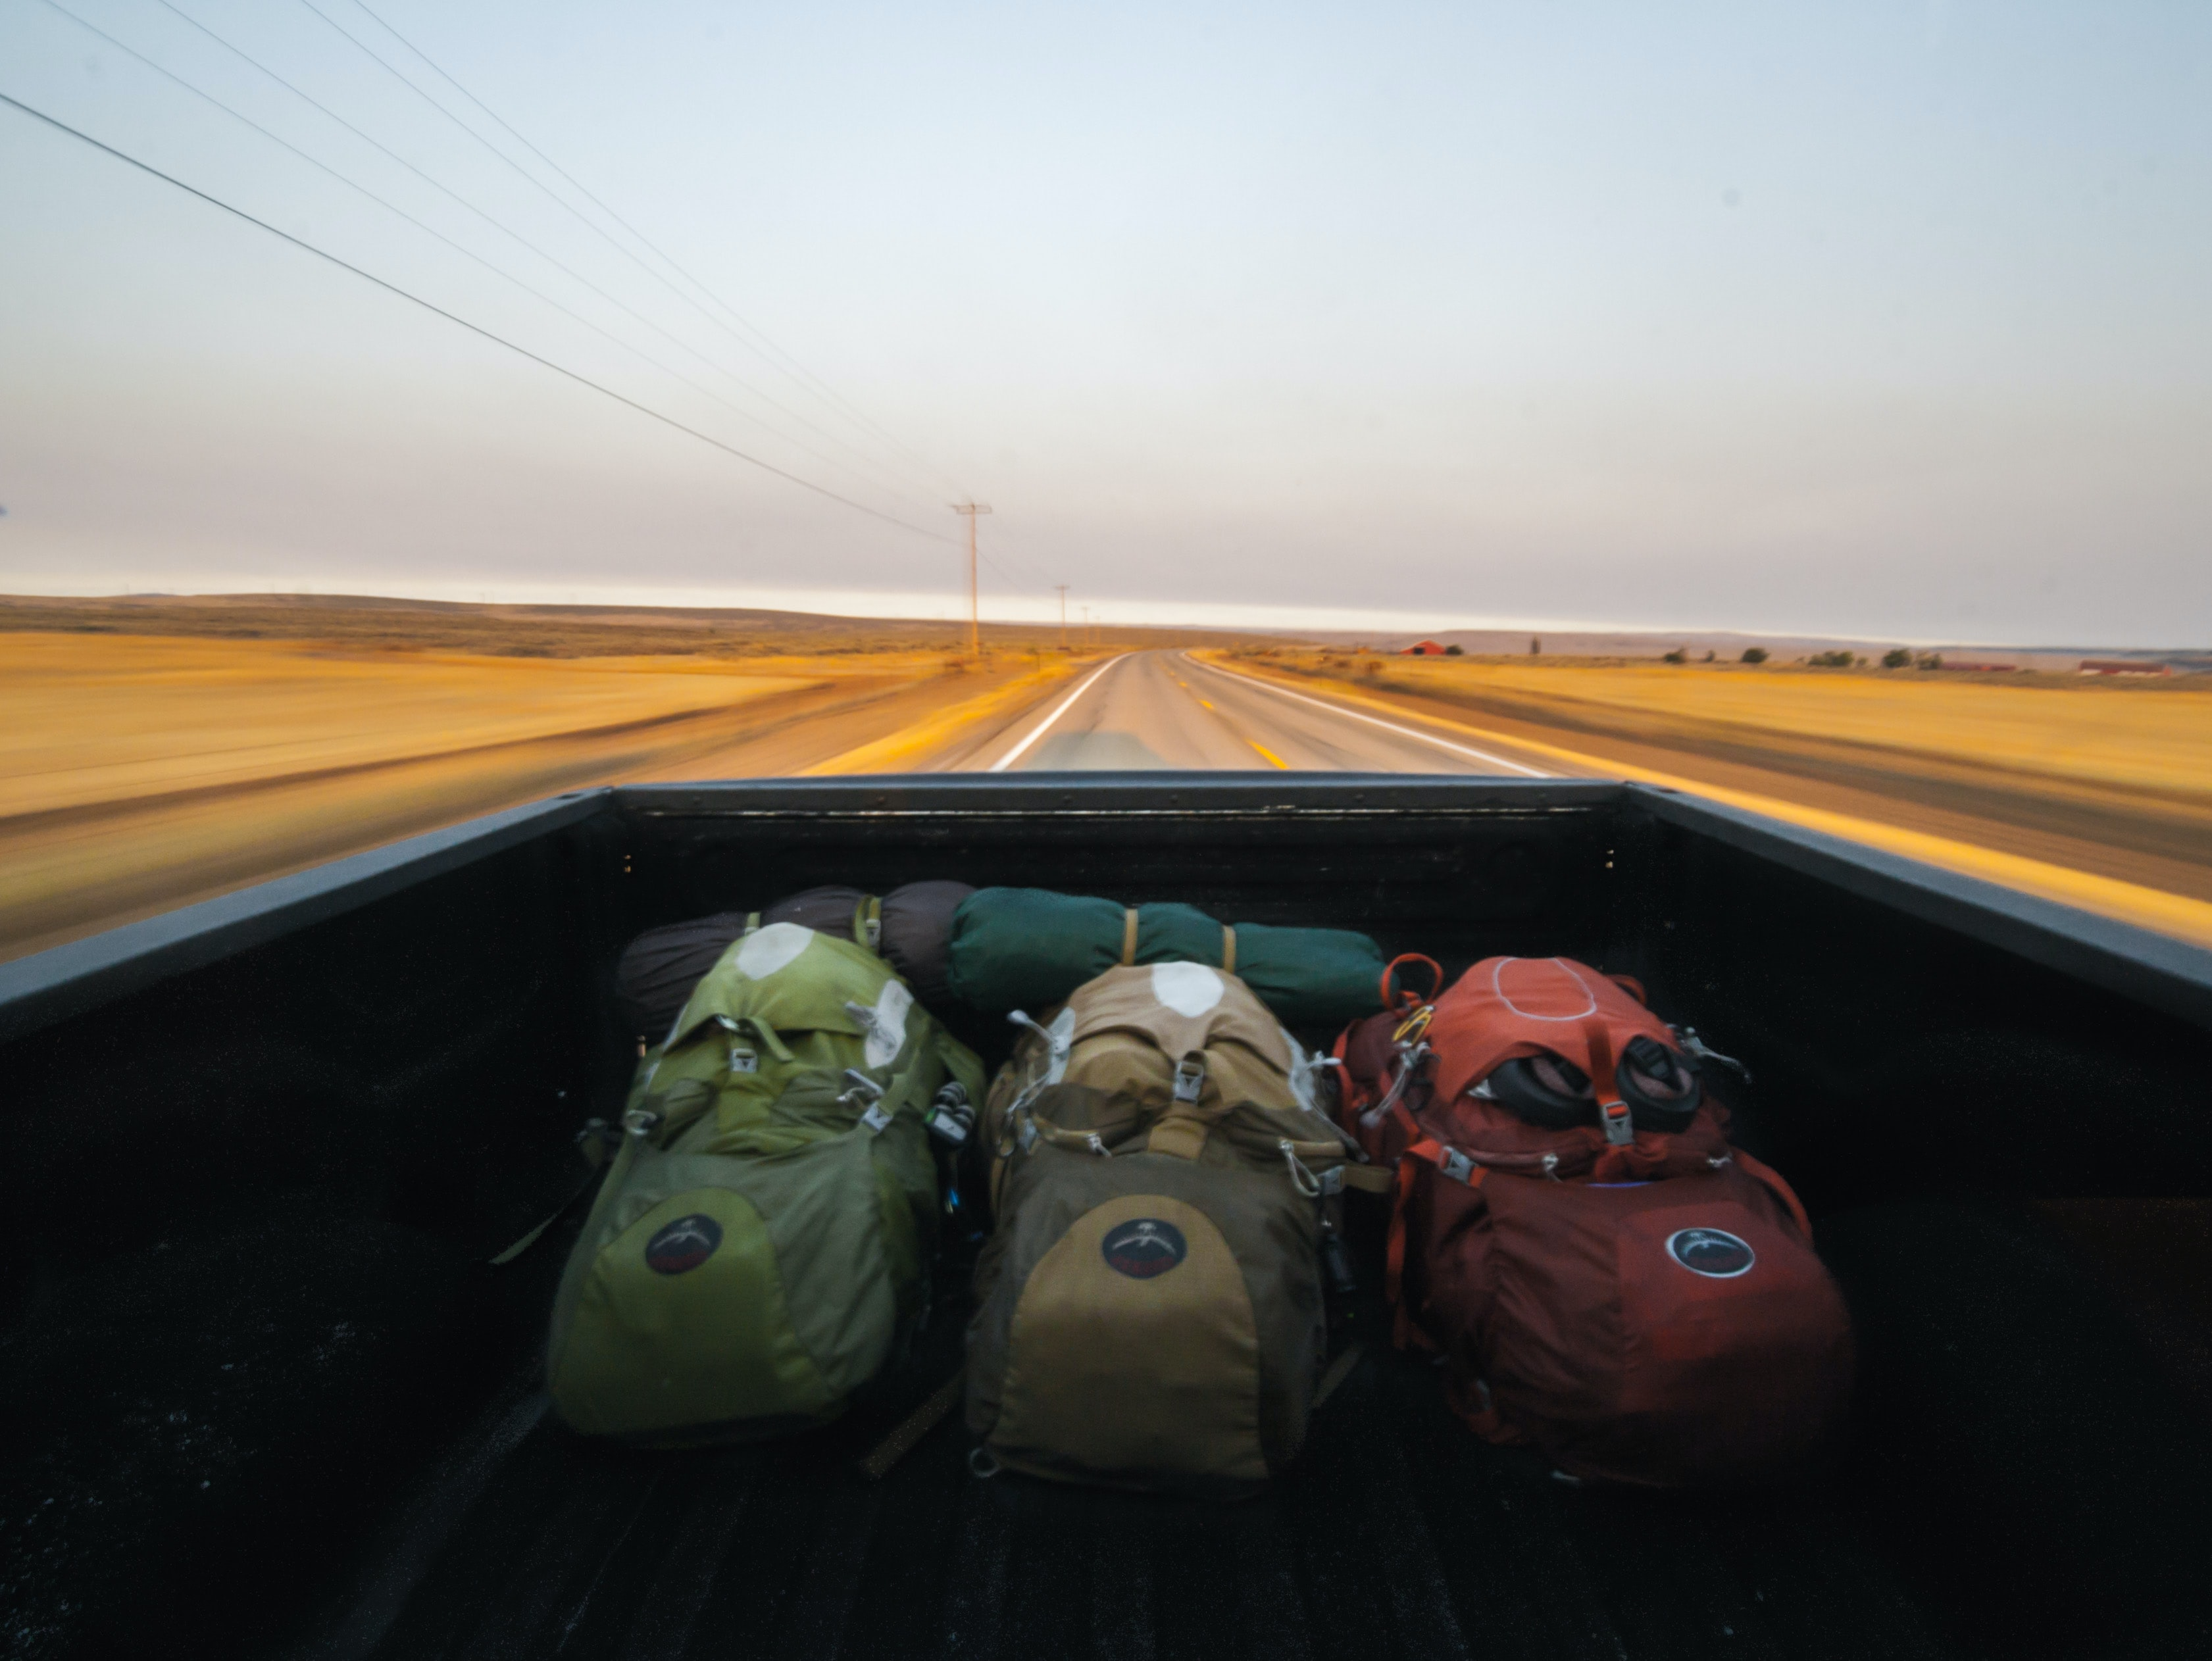 A view from the inside of a cargo area of a pickup truck with three backpacks in it